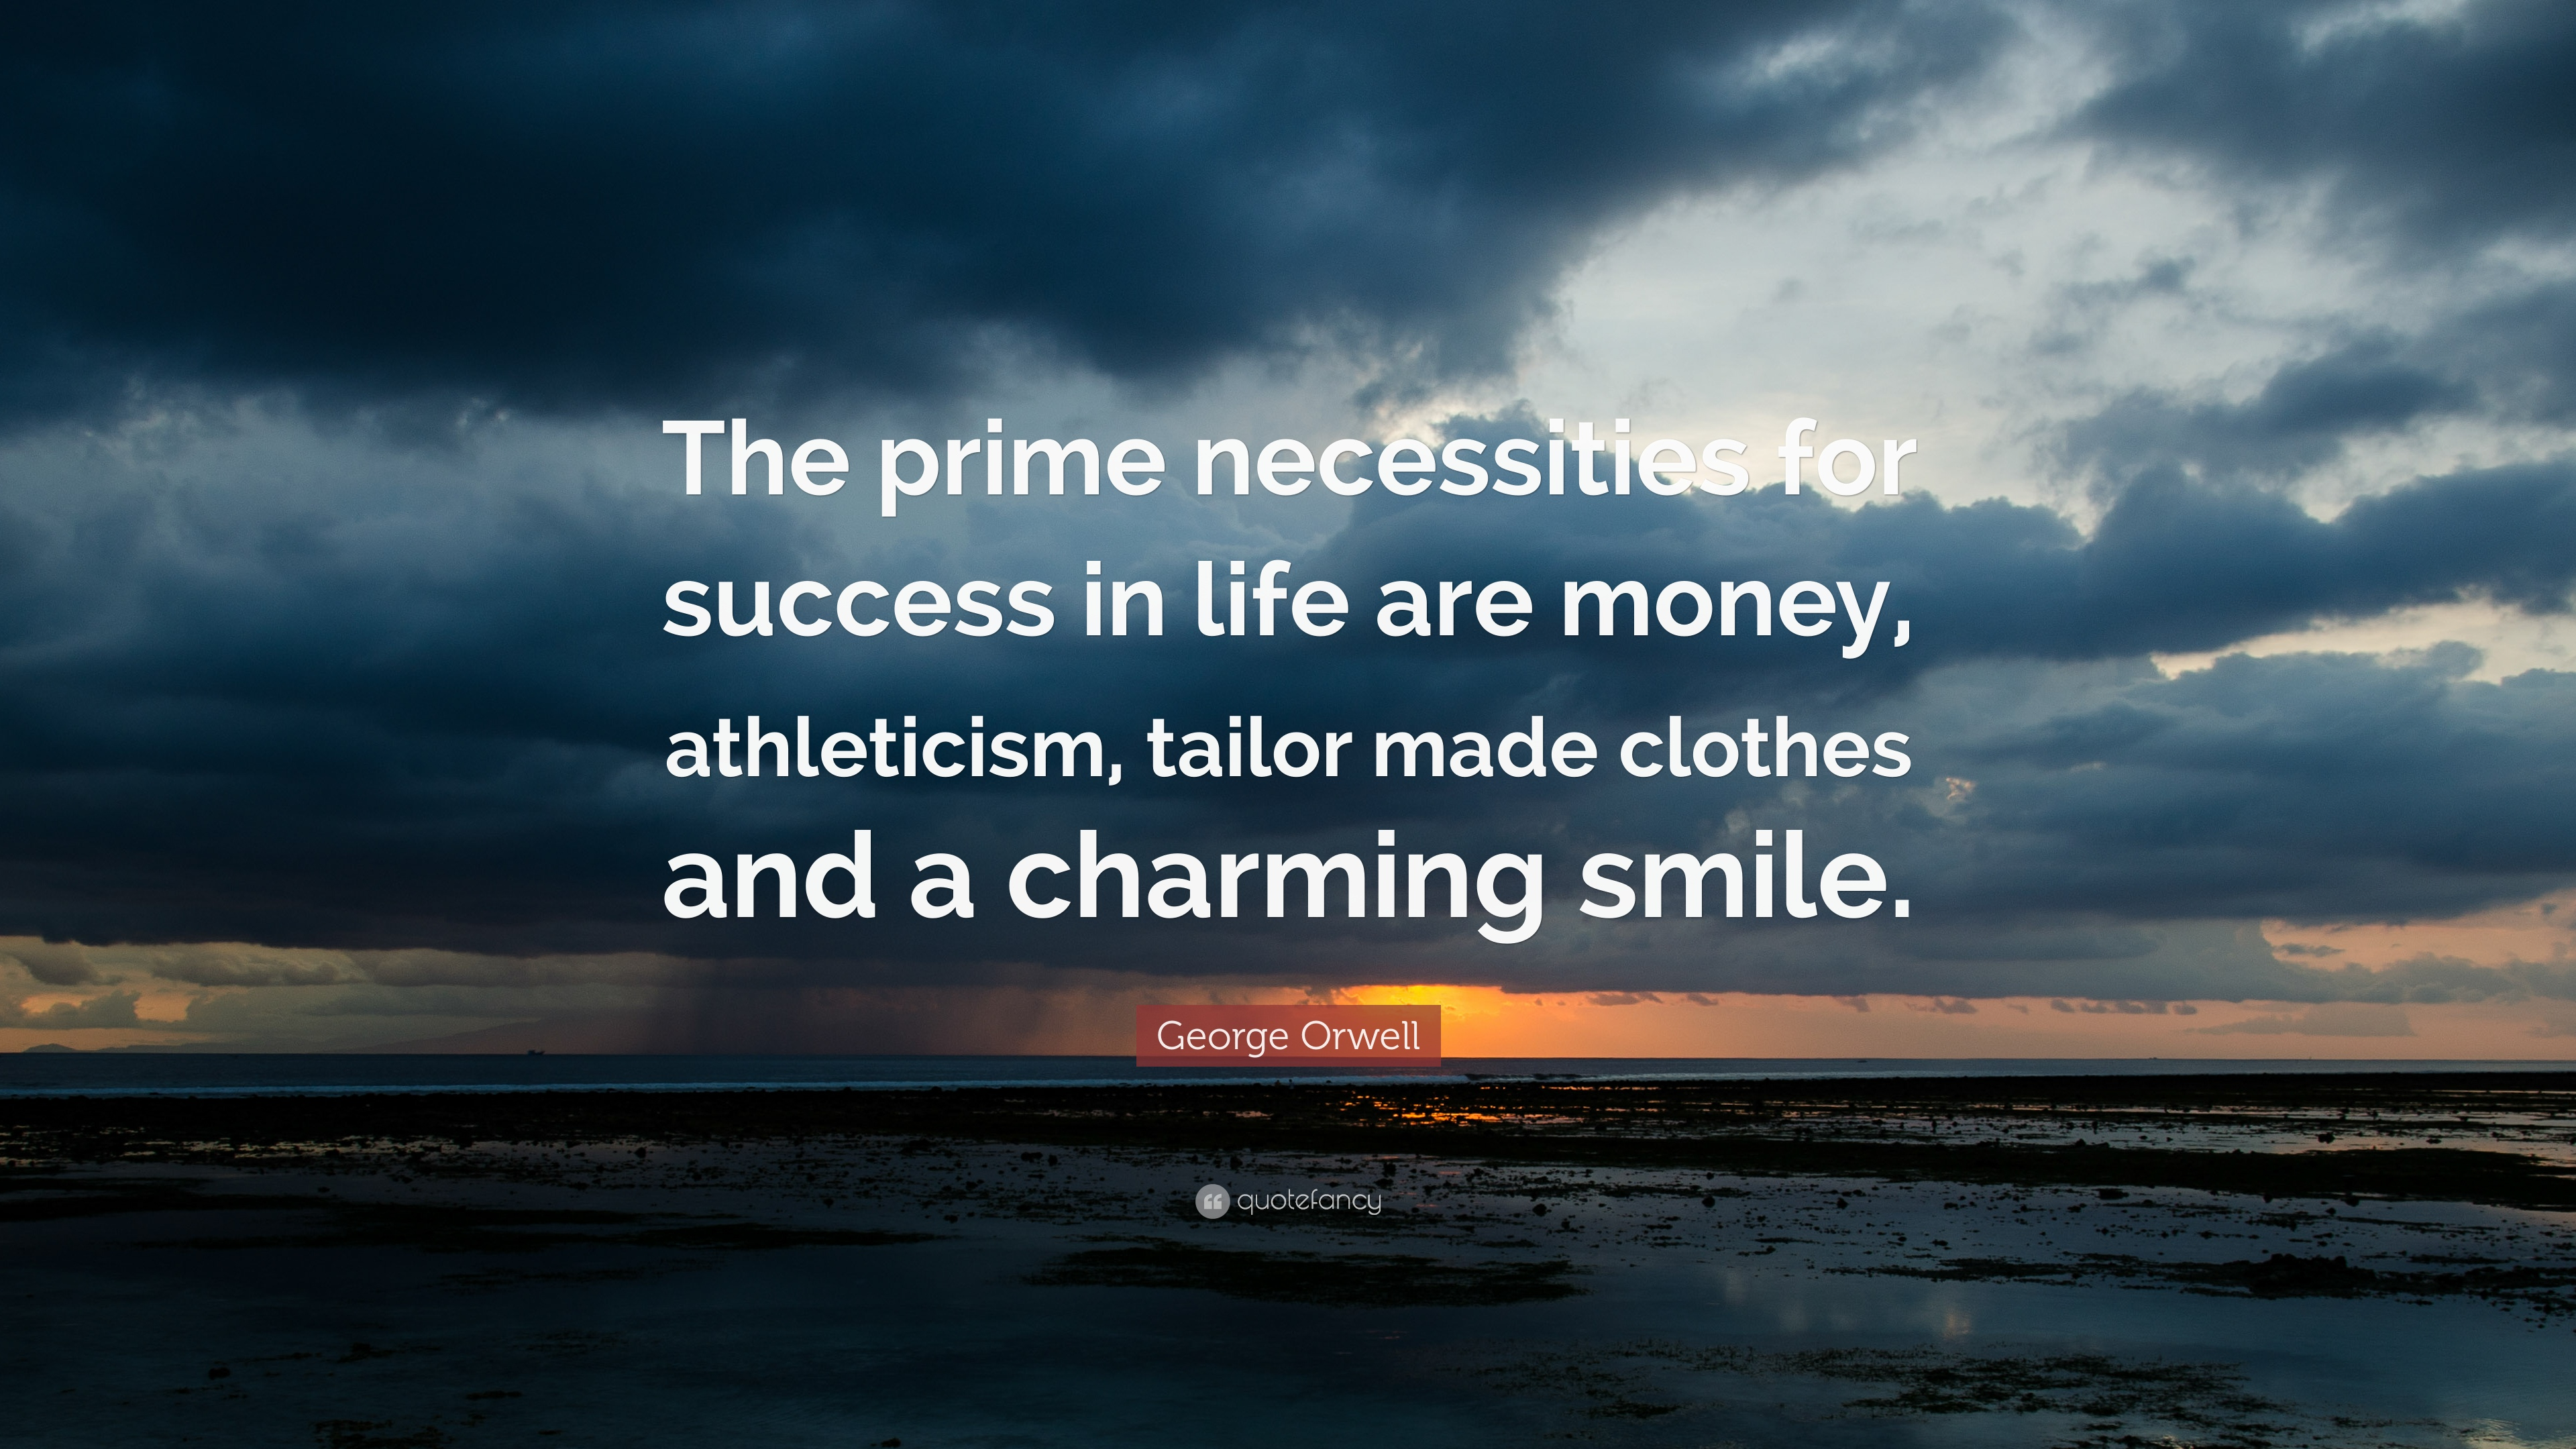 George Orwell Quote The Prime Necessities For Success In Life Are